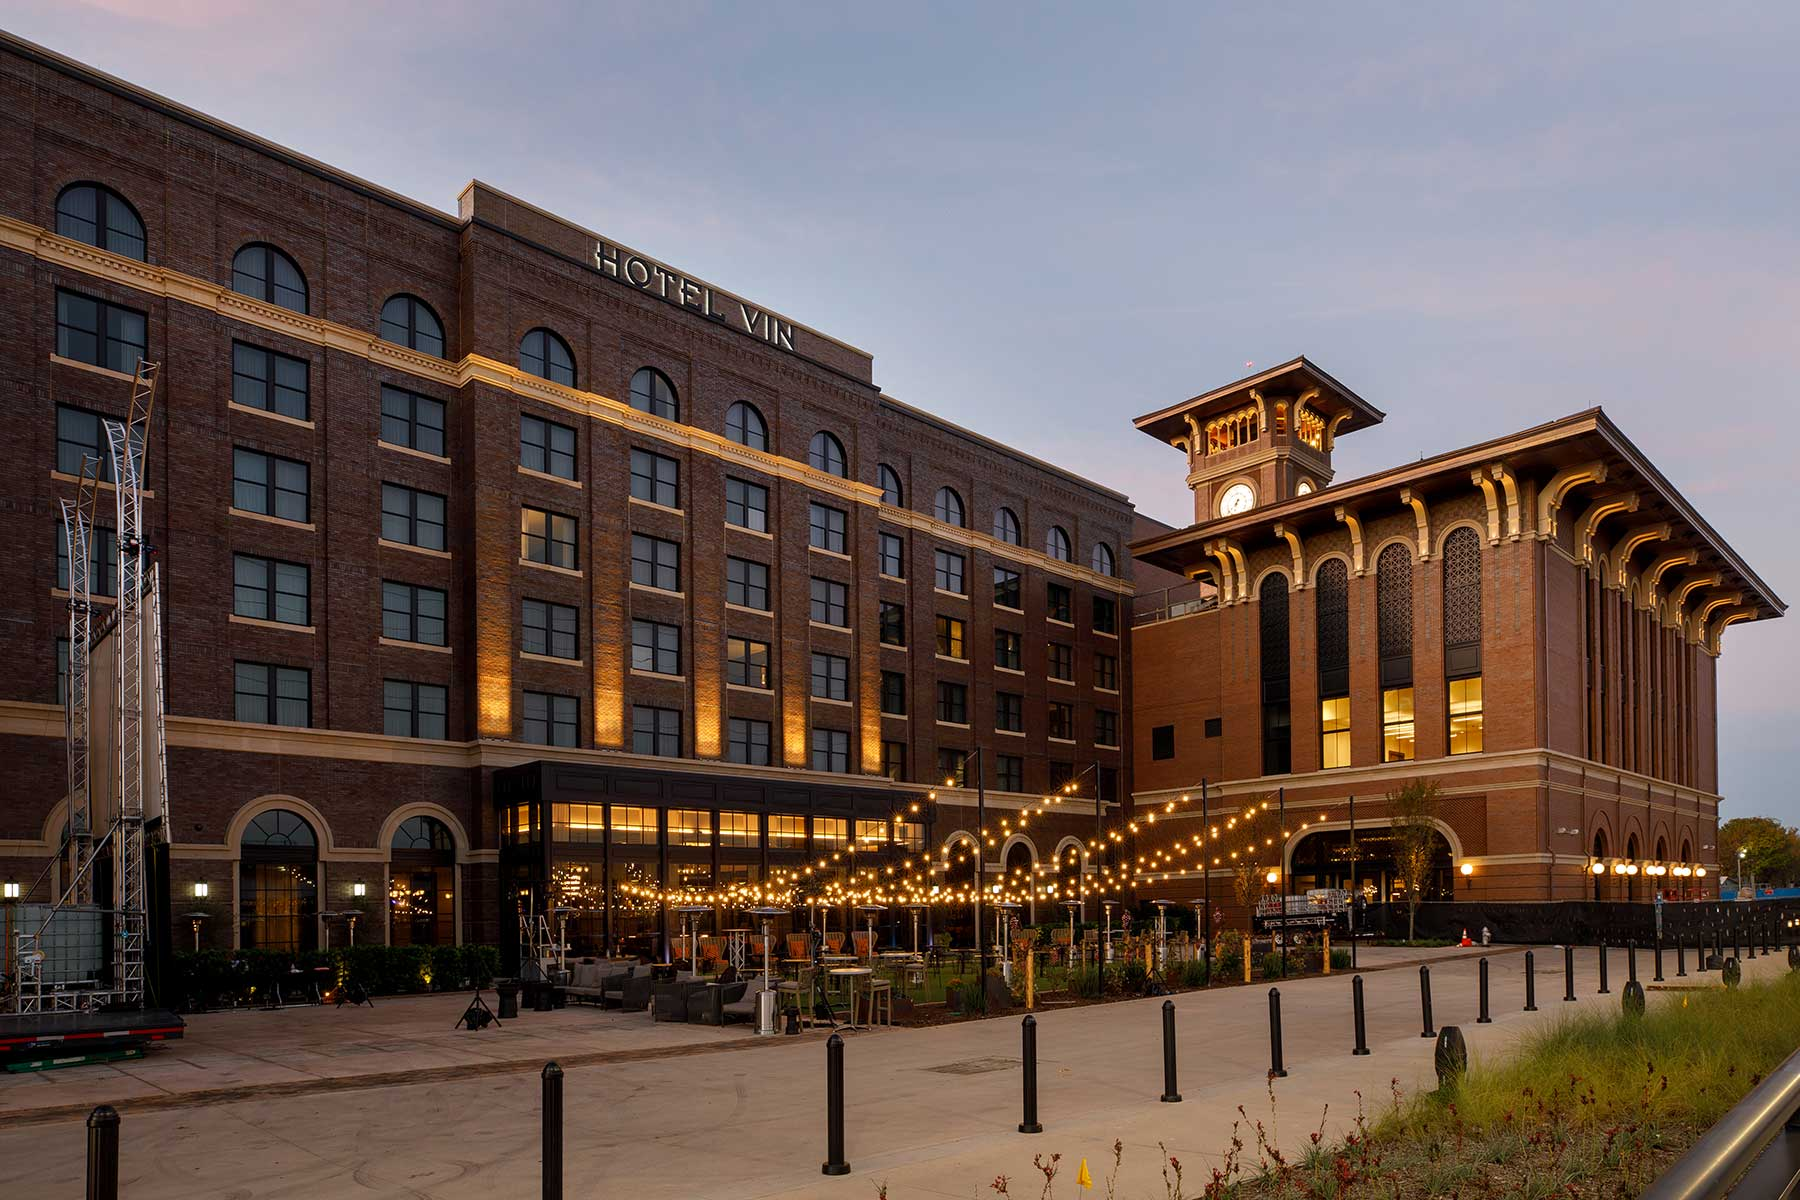 hotel vin building and patio exterior at dusk